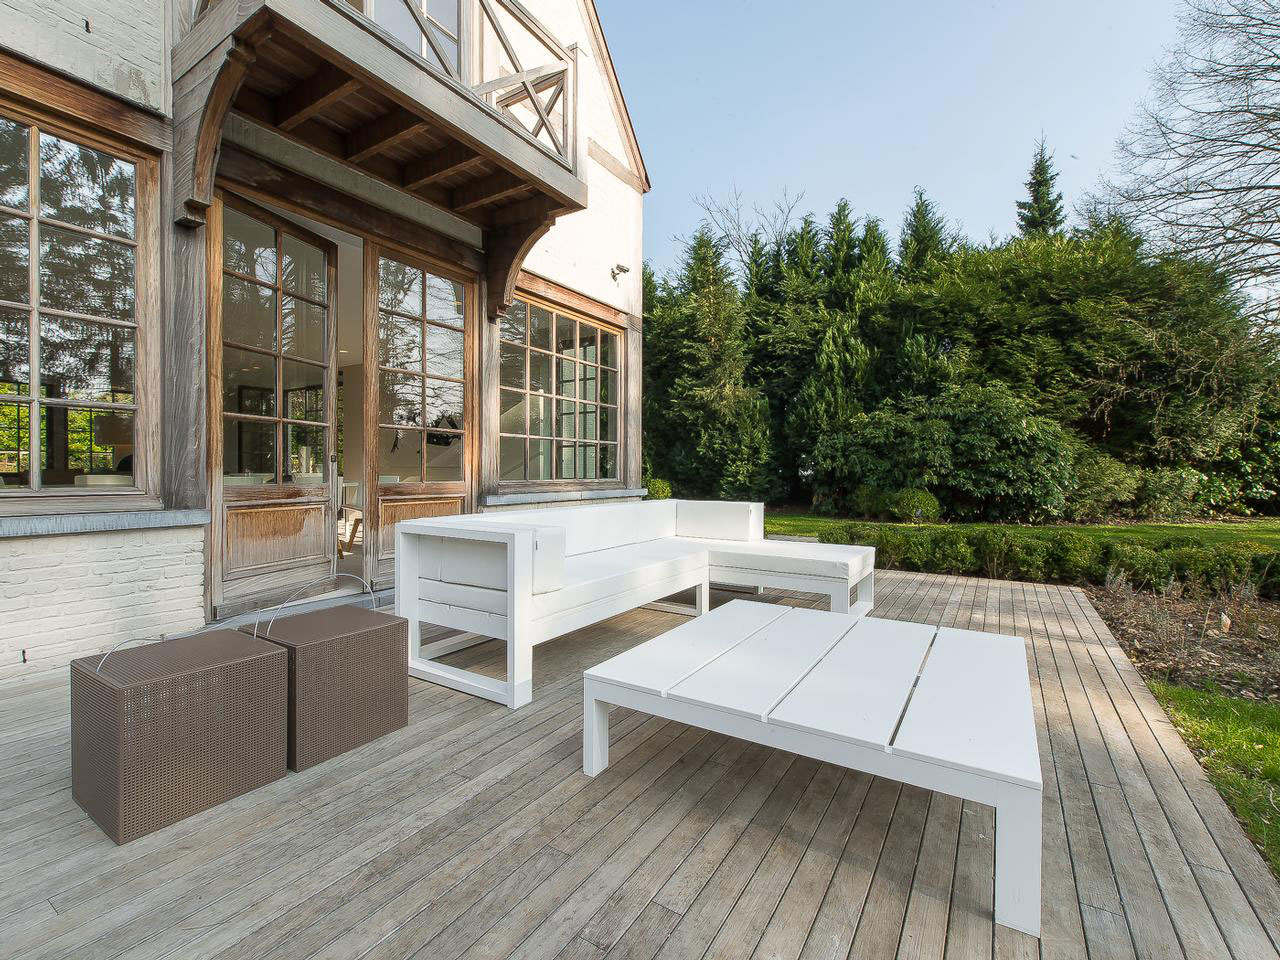 Wooden Deck, Terrace, Outdoor Furniture, House Renovation in Sint-Genesius-Rode, Belgium